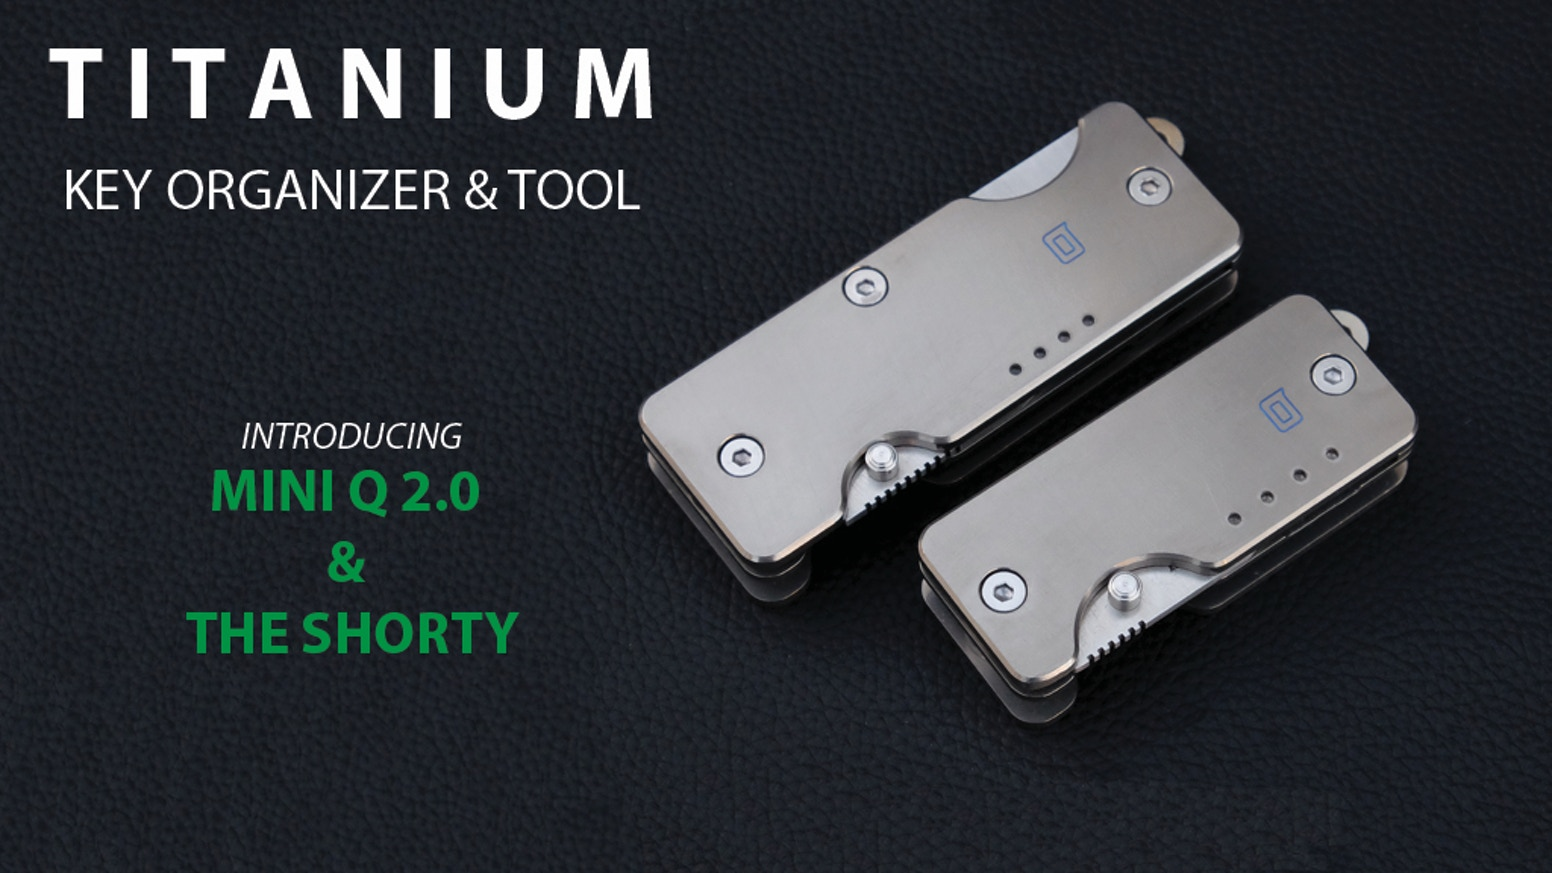 Titanium Key Organizer & Knife for your Everyday Carry! by